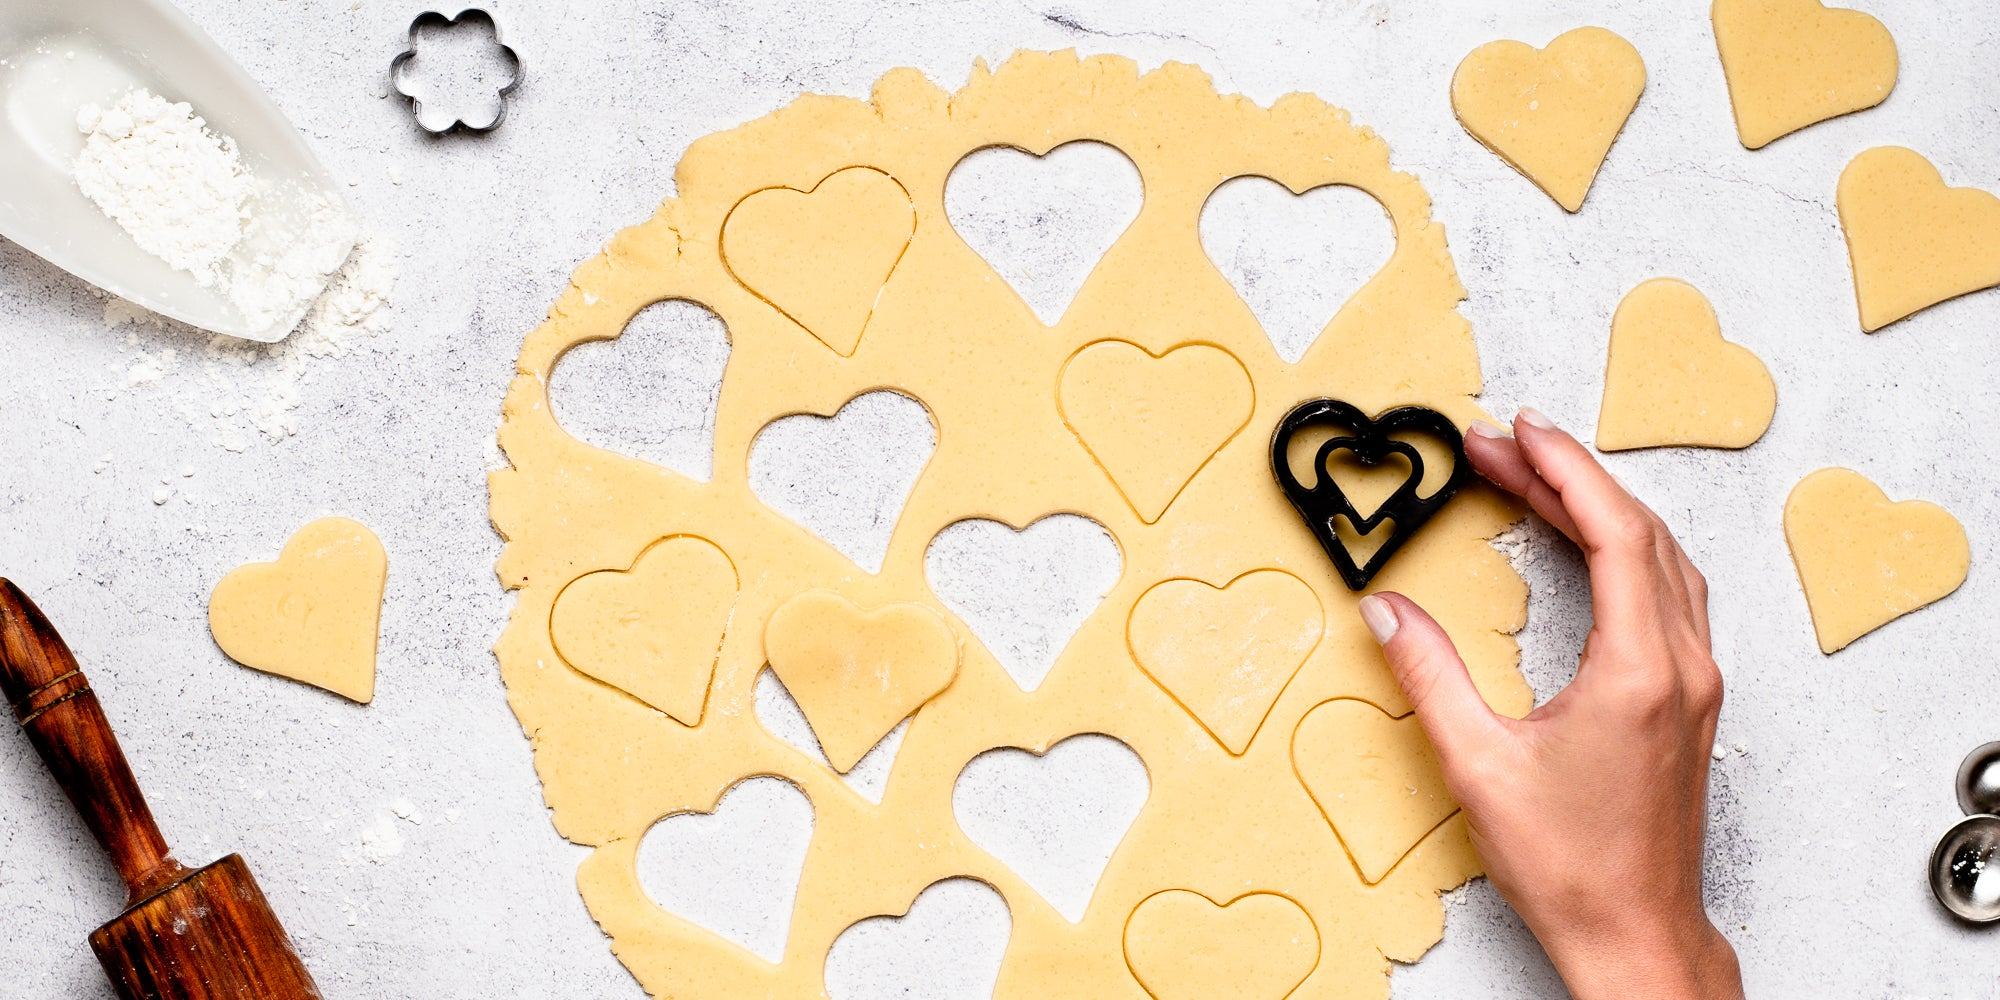 Top down view of a hand using a heart-shaped cookie cutter to cut out gluten free biscuit dough